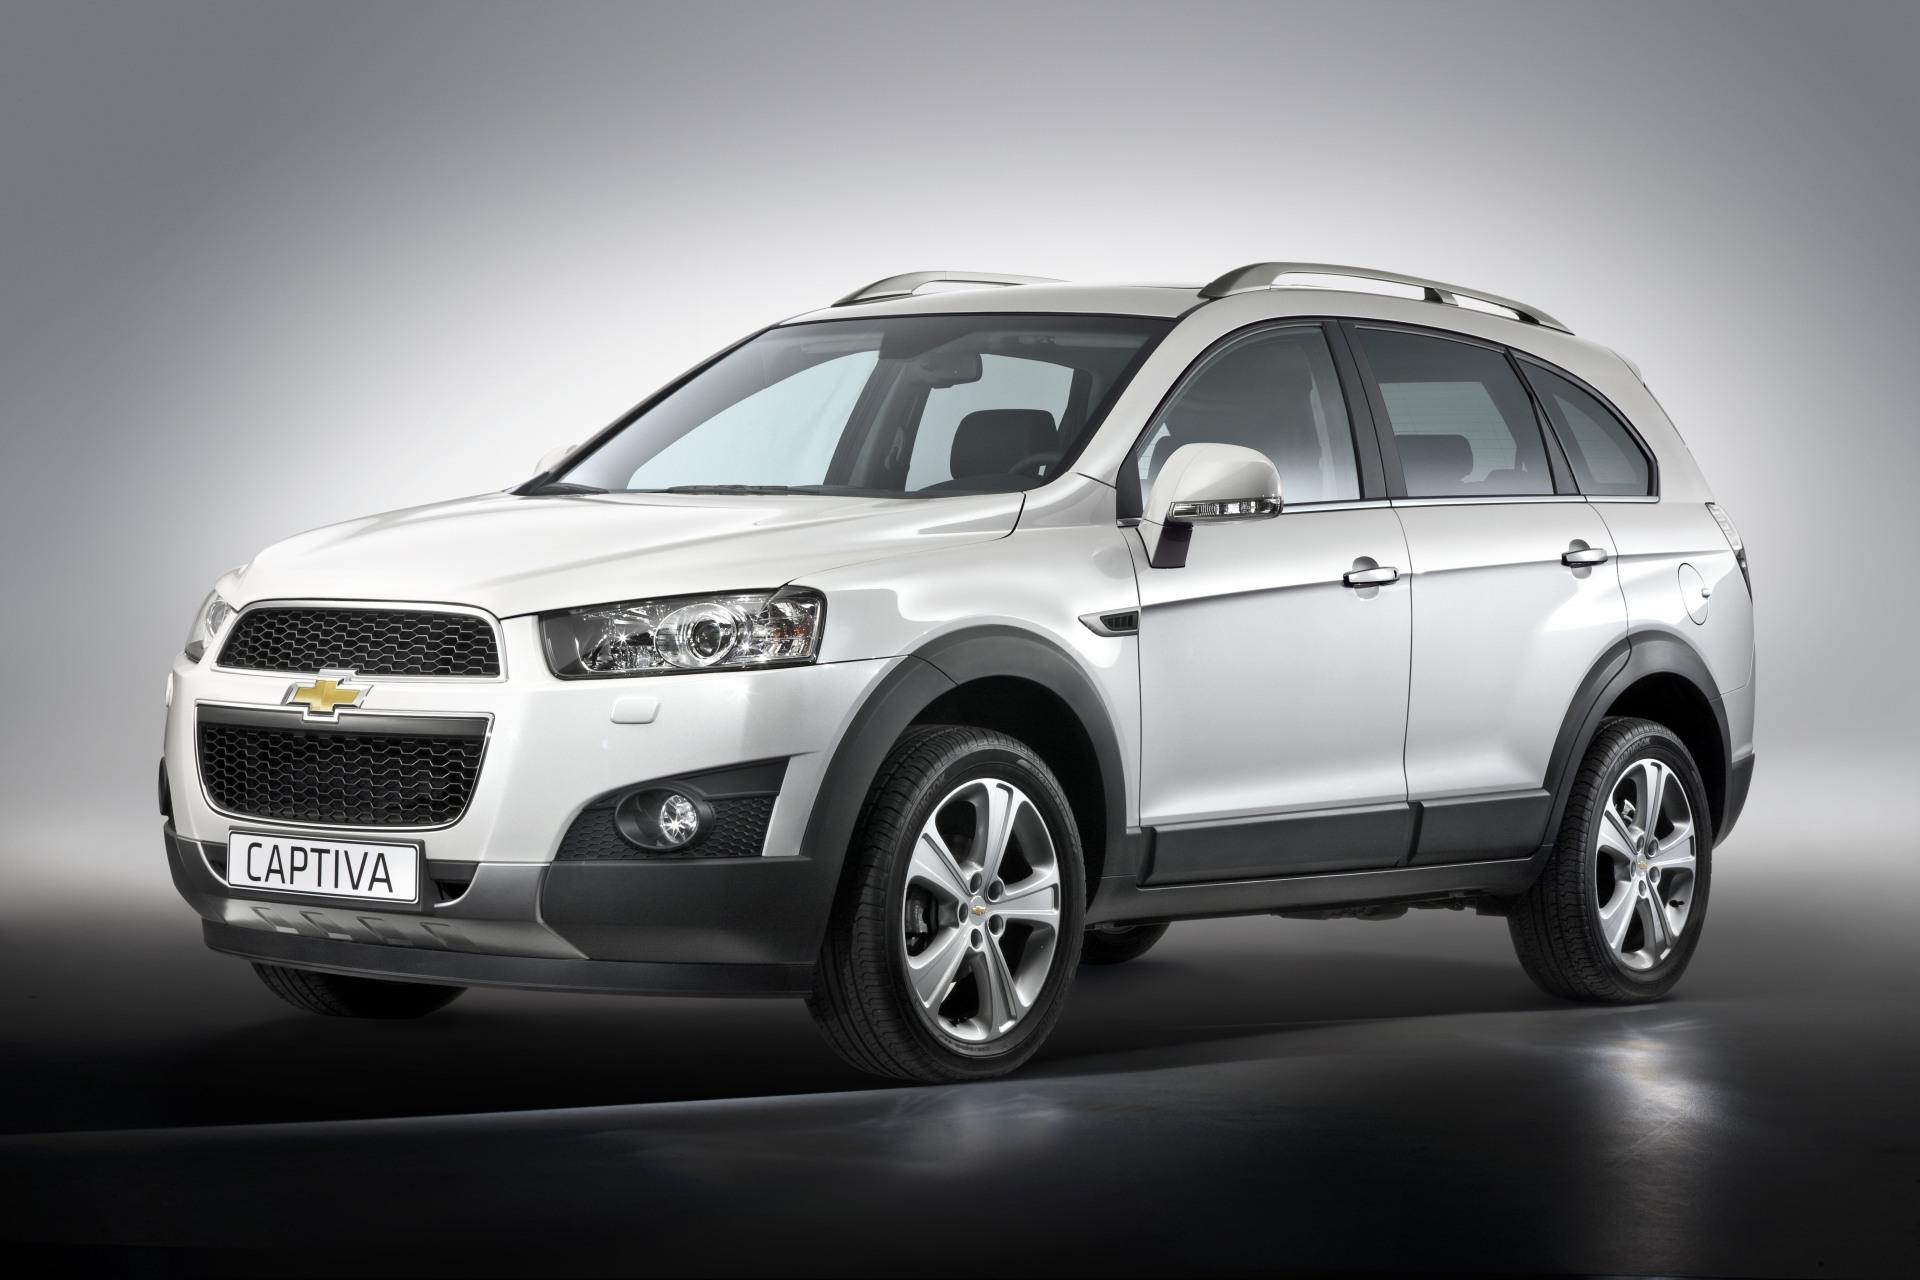 2012 chevrolet captiva. Black Bedroom Furniture Sets. Home Design Ideas